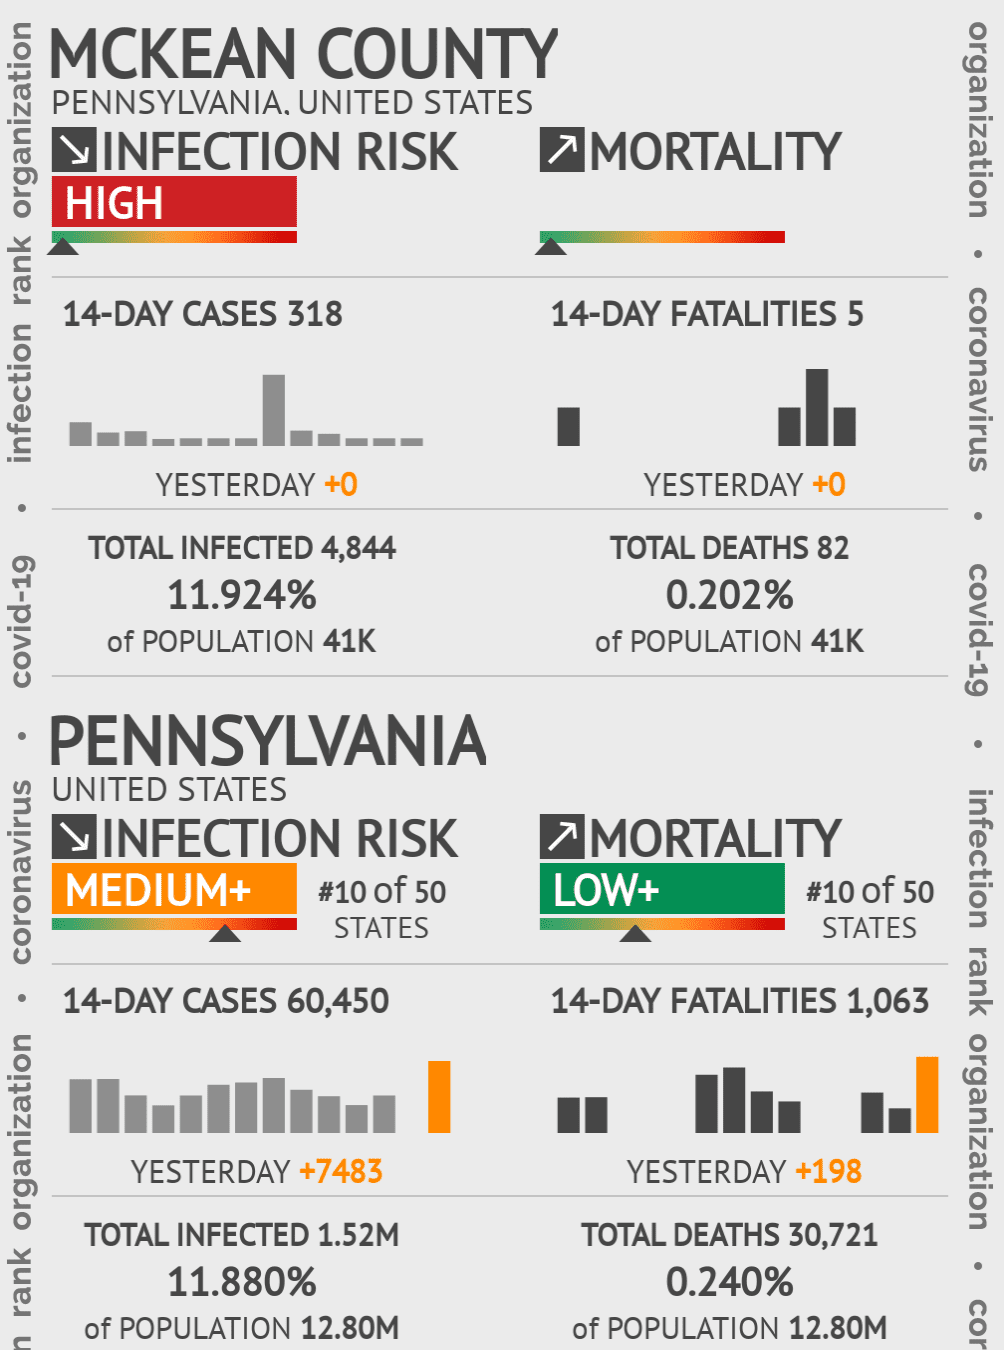 McKean County Coronavirus Covid-19 Risk of Infection on July 24, 2021